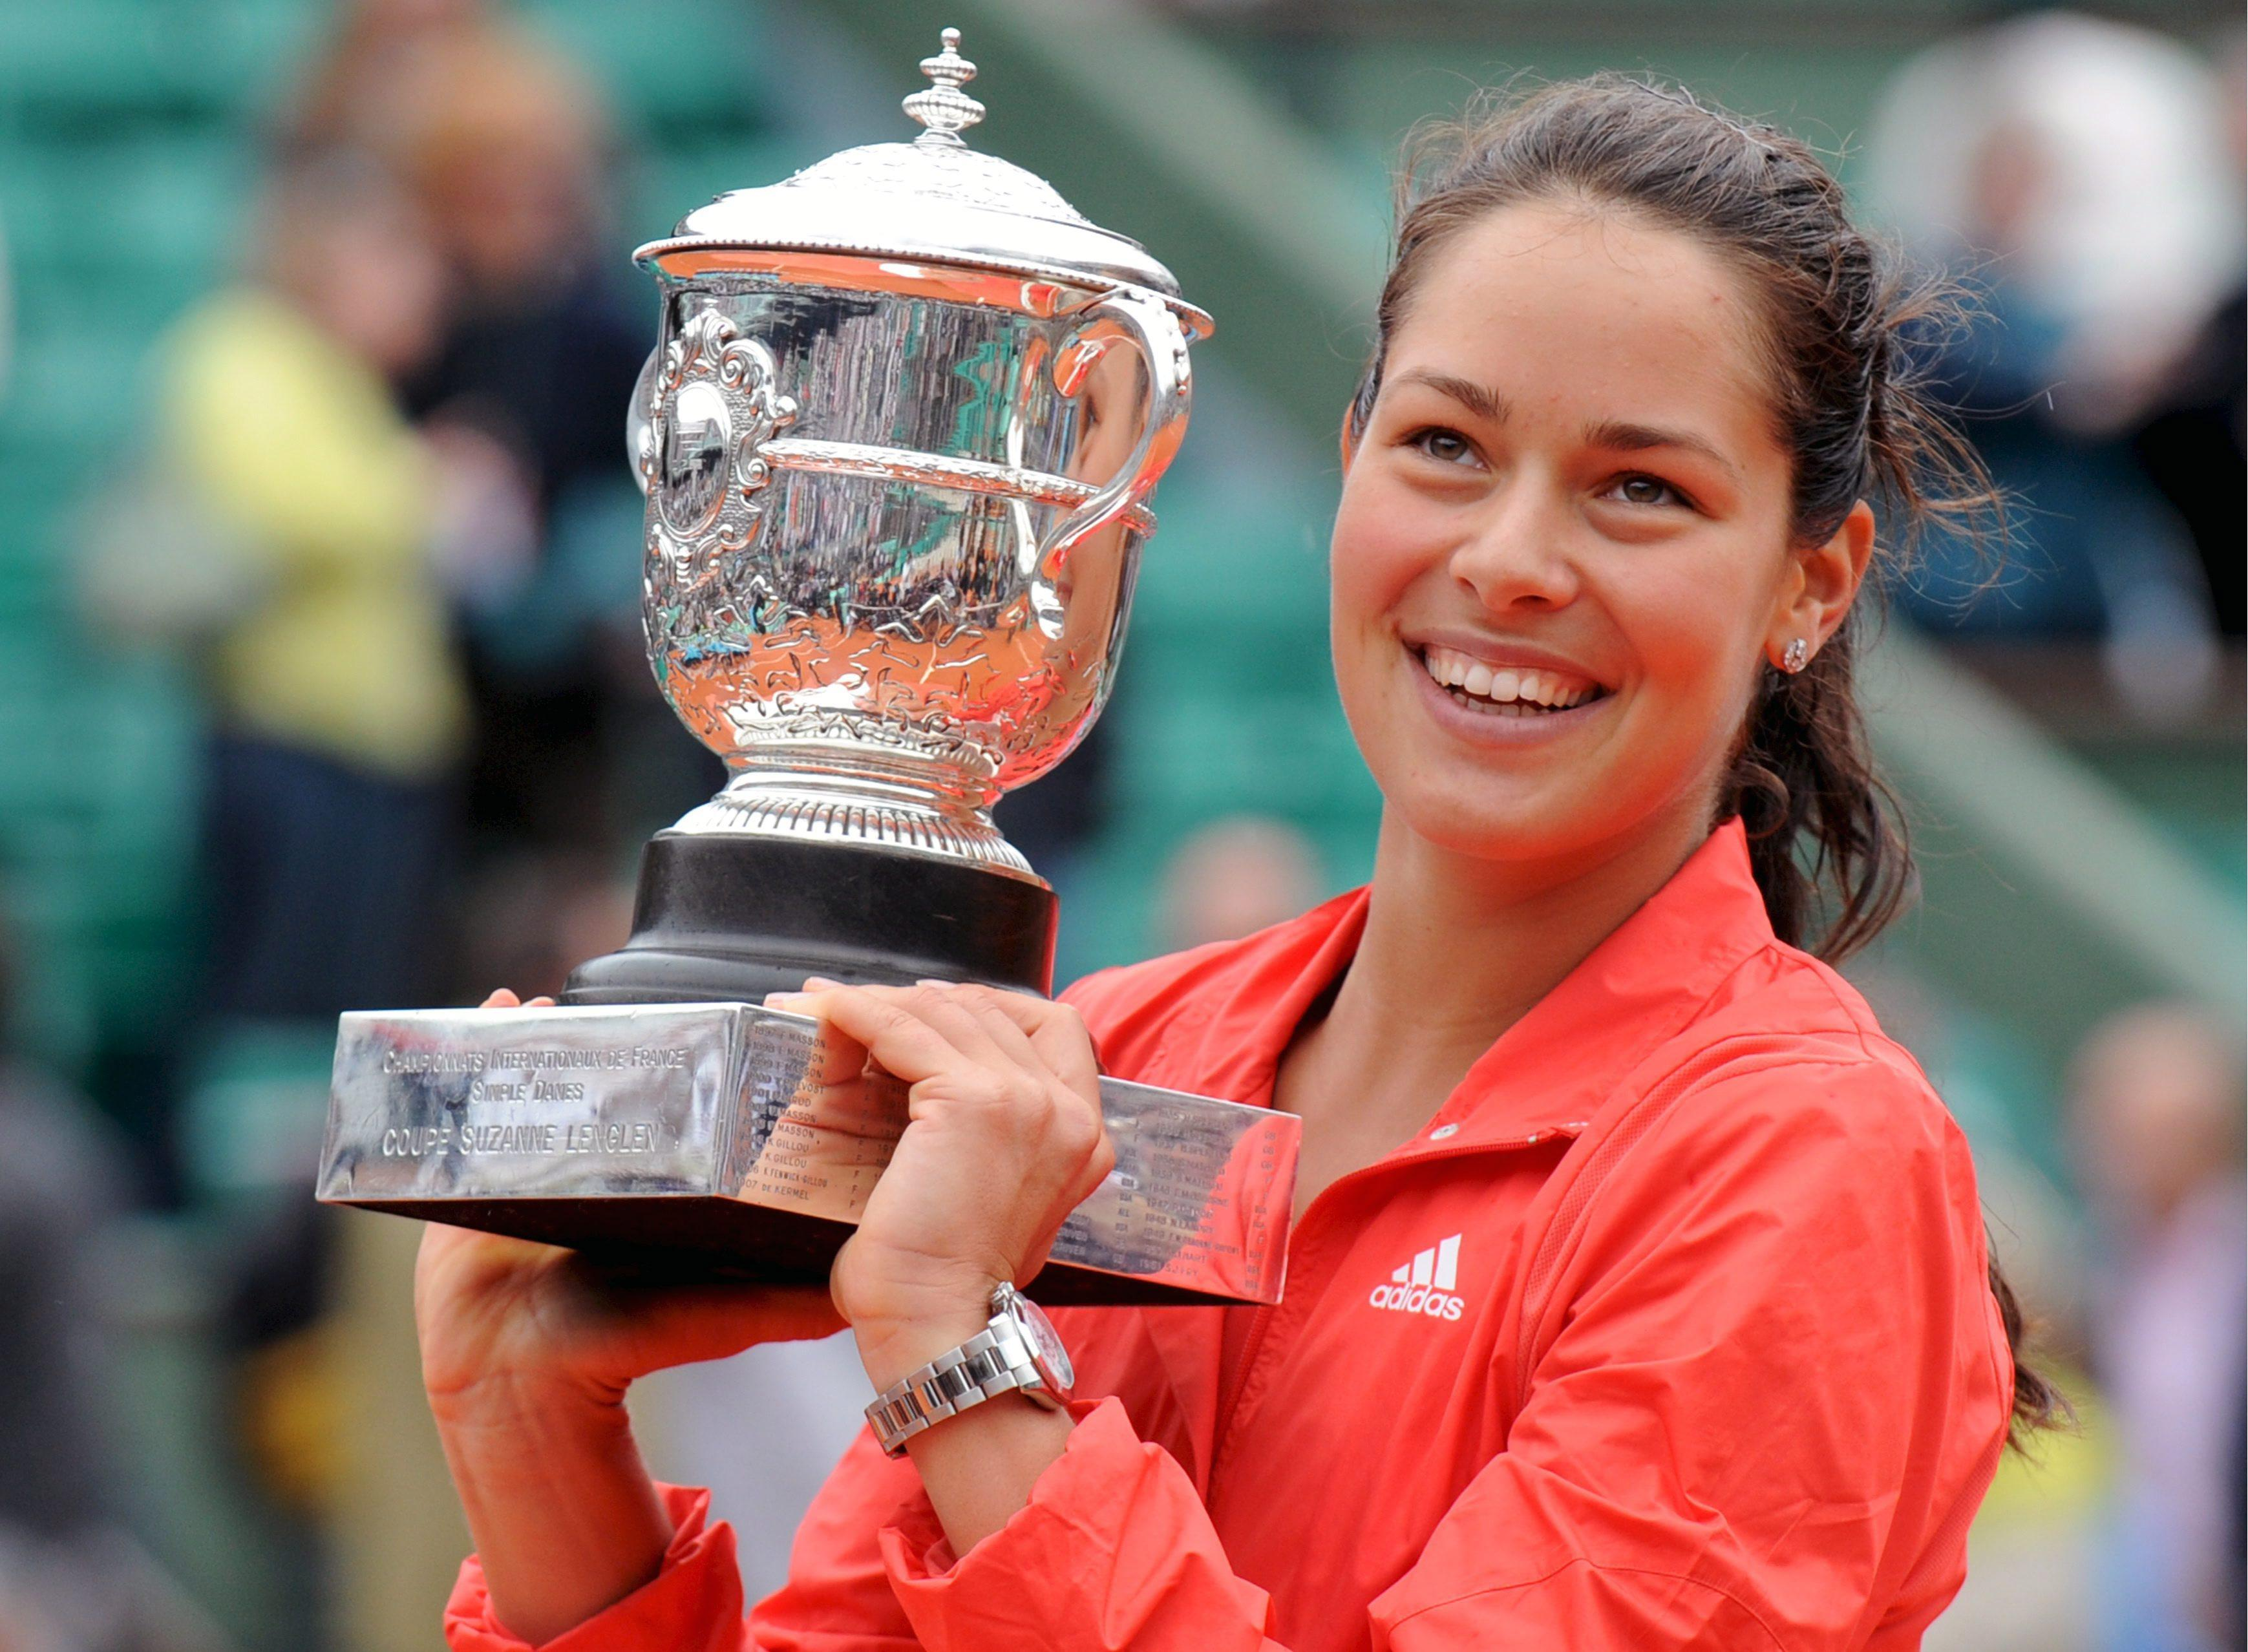 Ivanovic won the French Open in 2008